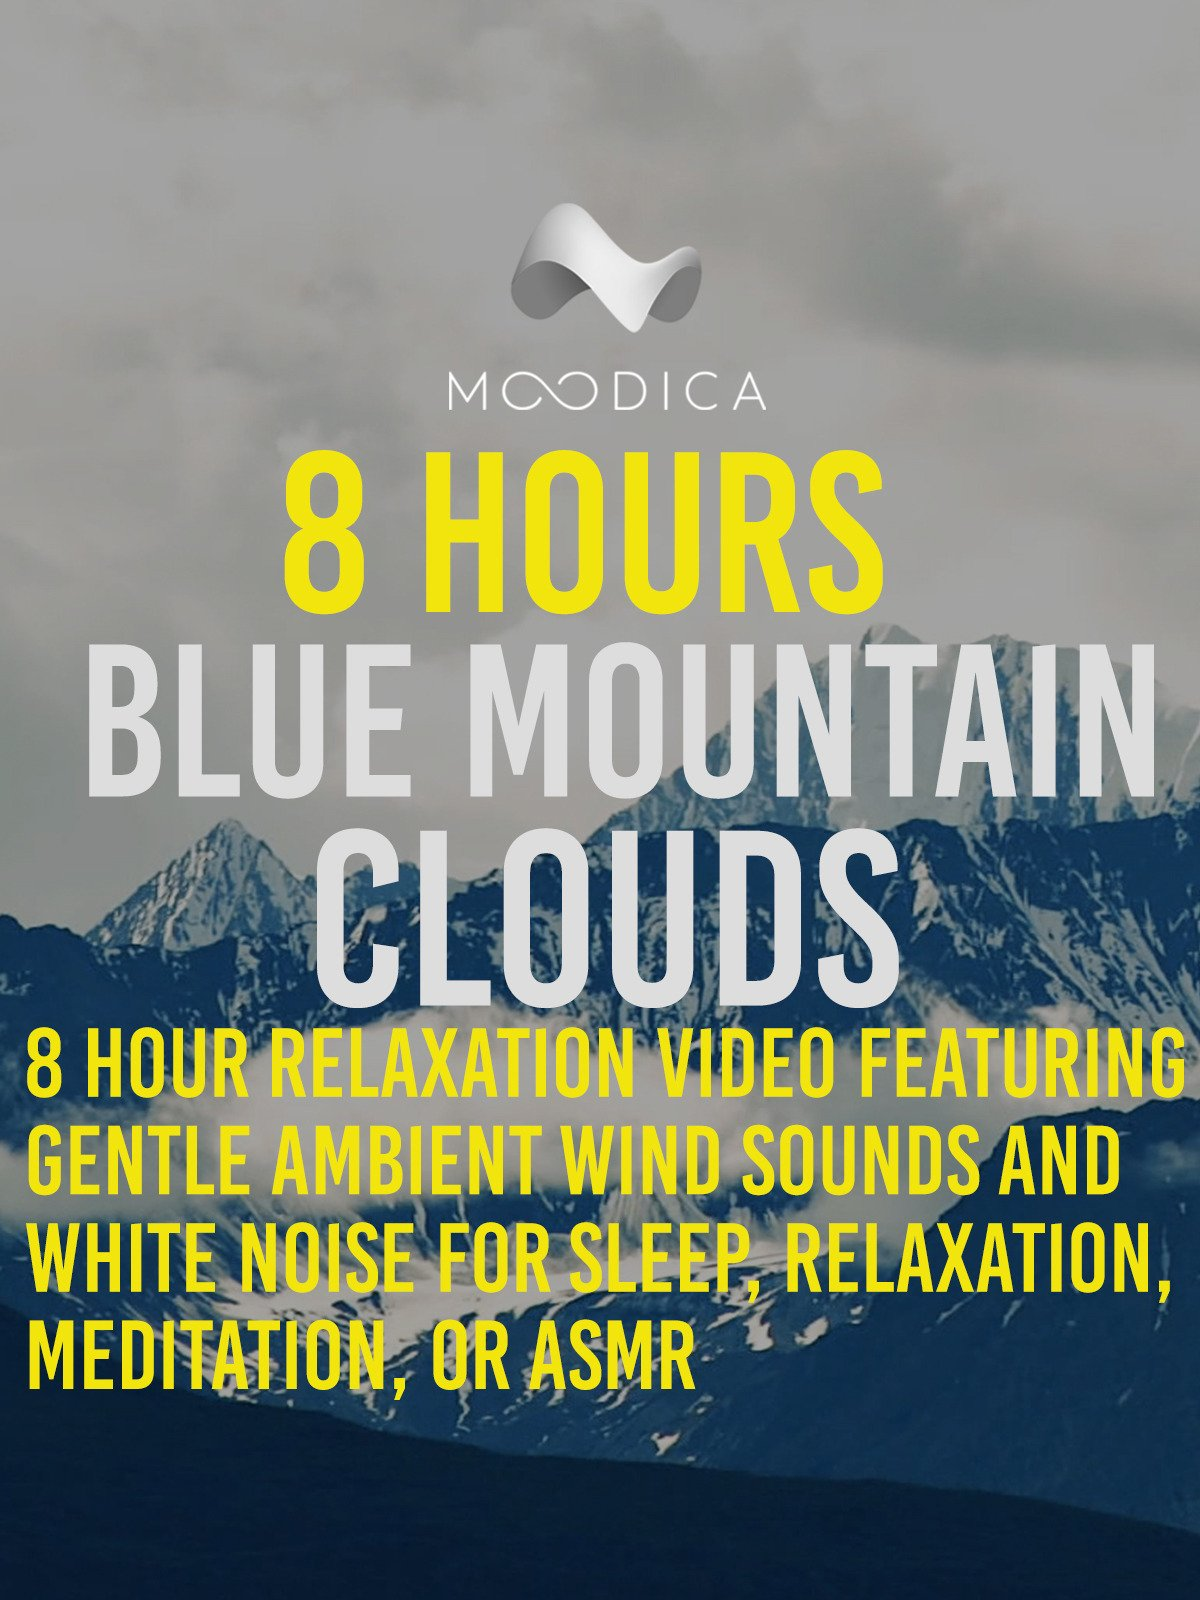 8 Hour: Blue Mountain Clouds: 8 Hour Relaxation Video Featuring Gentle Ambient Wind Sounds and White Noise For Sleep, Relaxation, Meditation, or ASMR